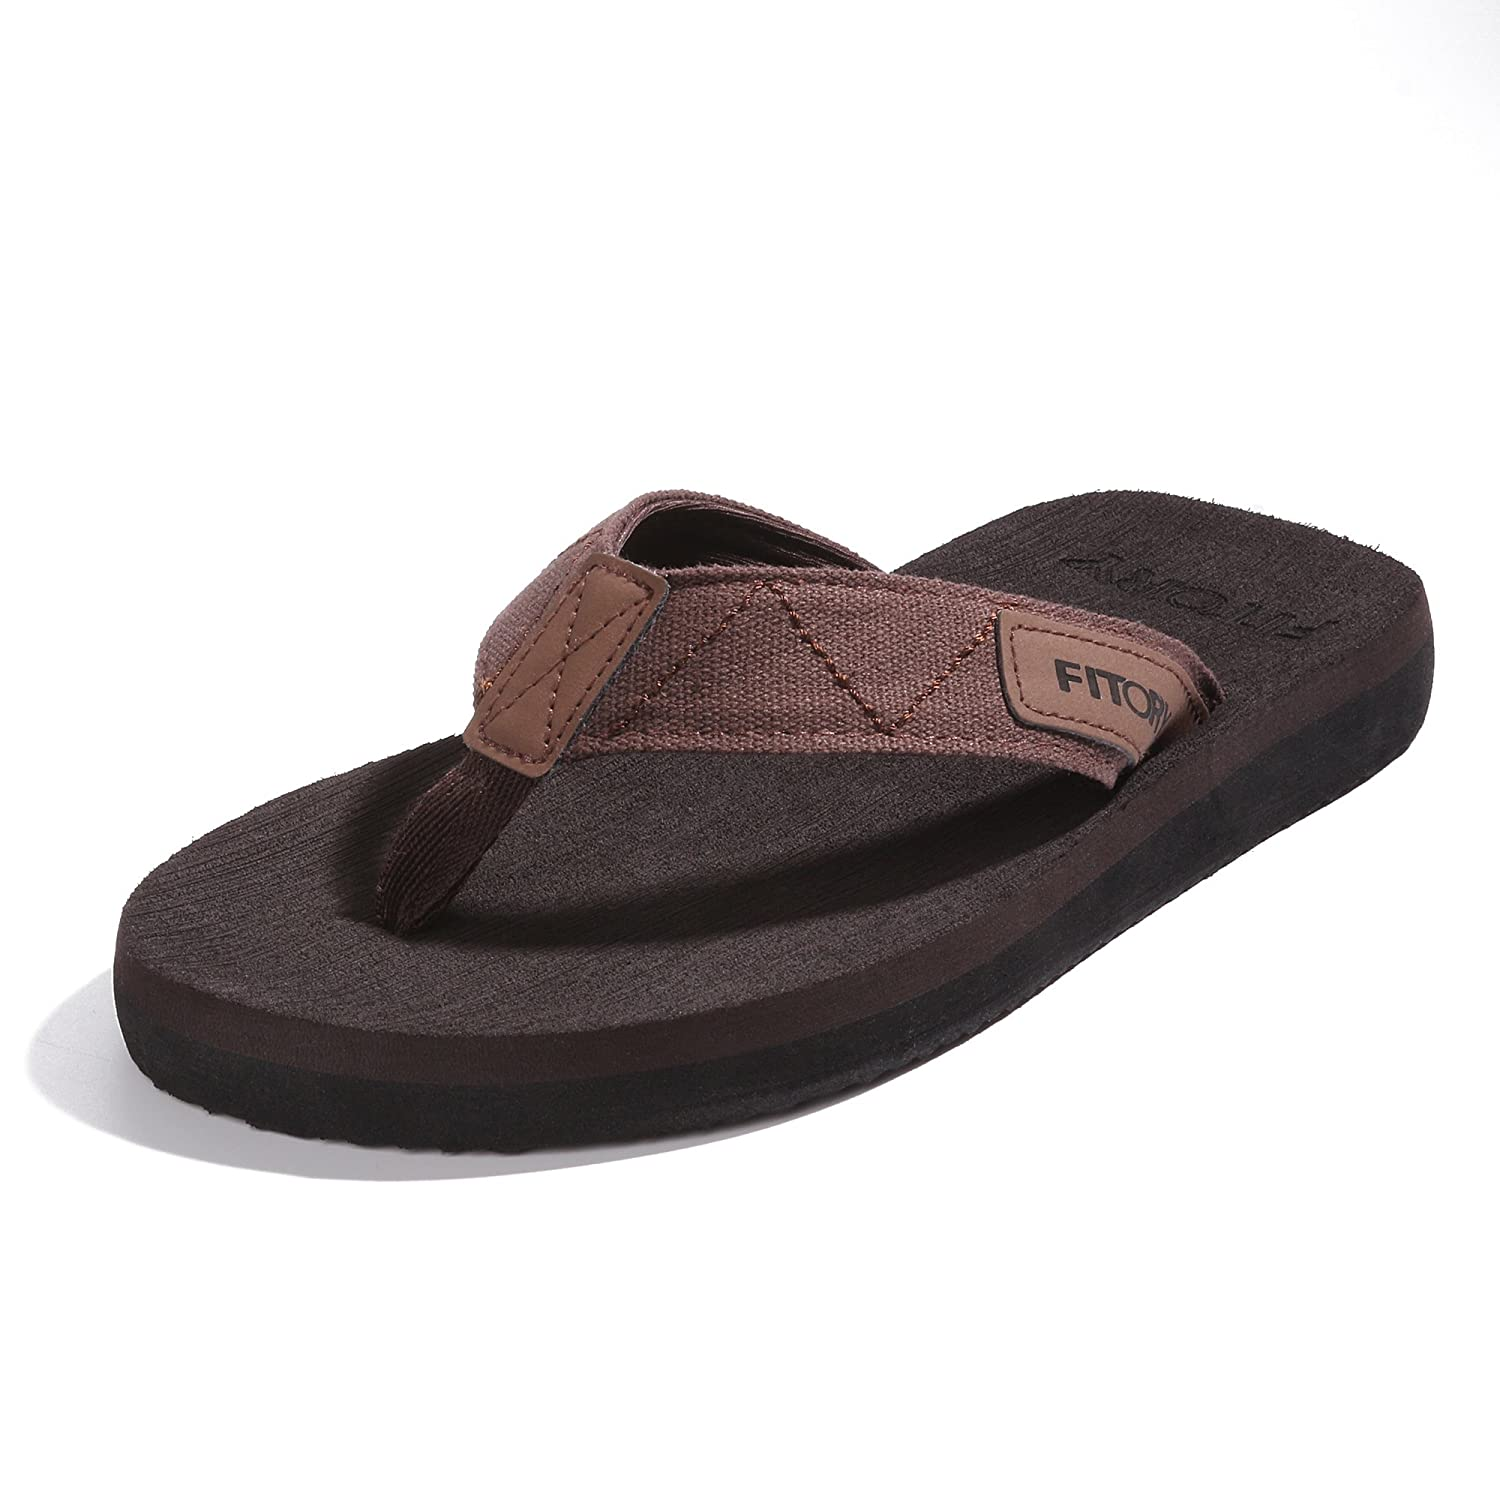 FITORY Men's Flip-Flops, Arch Support Thongs Comfort Slippers for Beach Size 7-13 FITORY Men's Flip-Flops